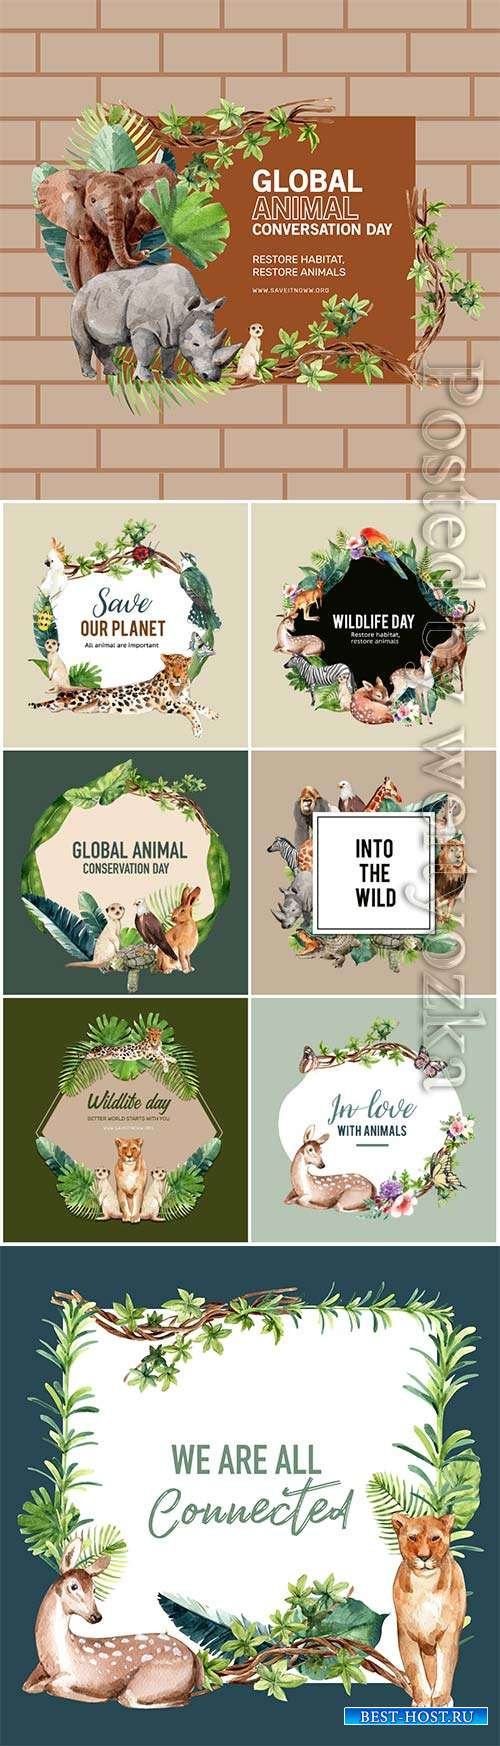 Zoo wreath design with eagle, gorilla, giraffe, rhino watercolor illustrati ...